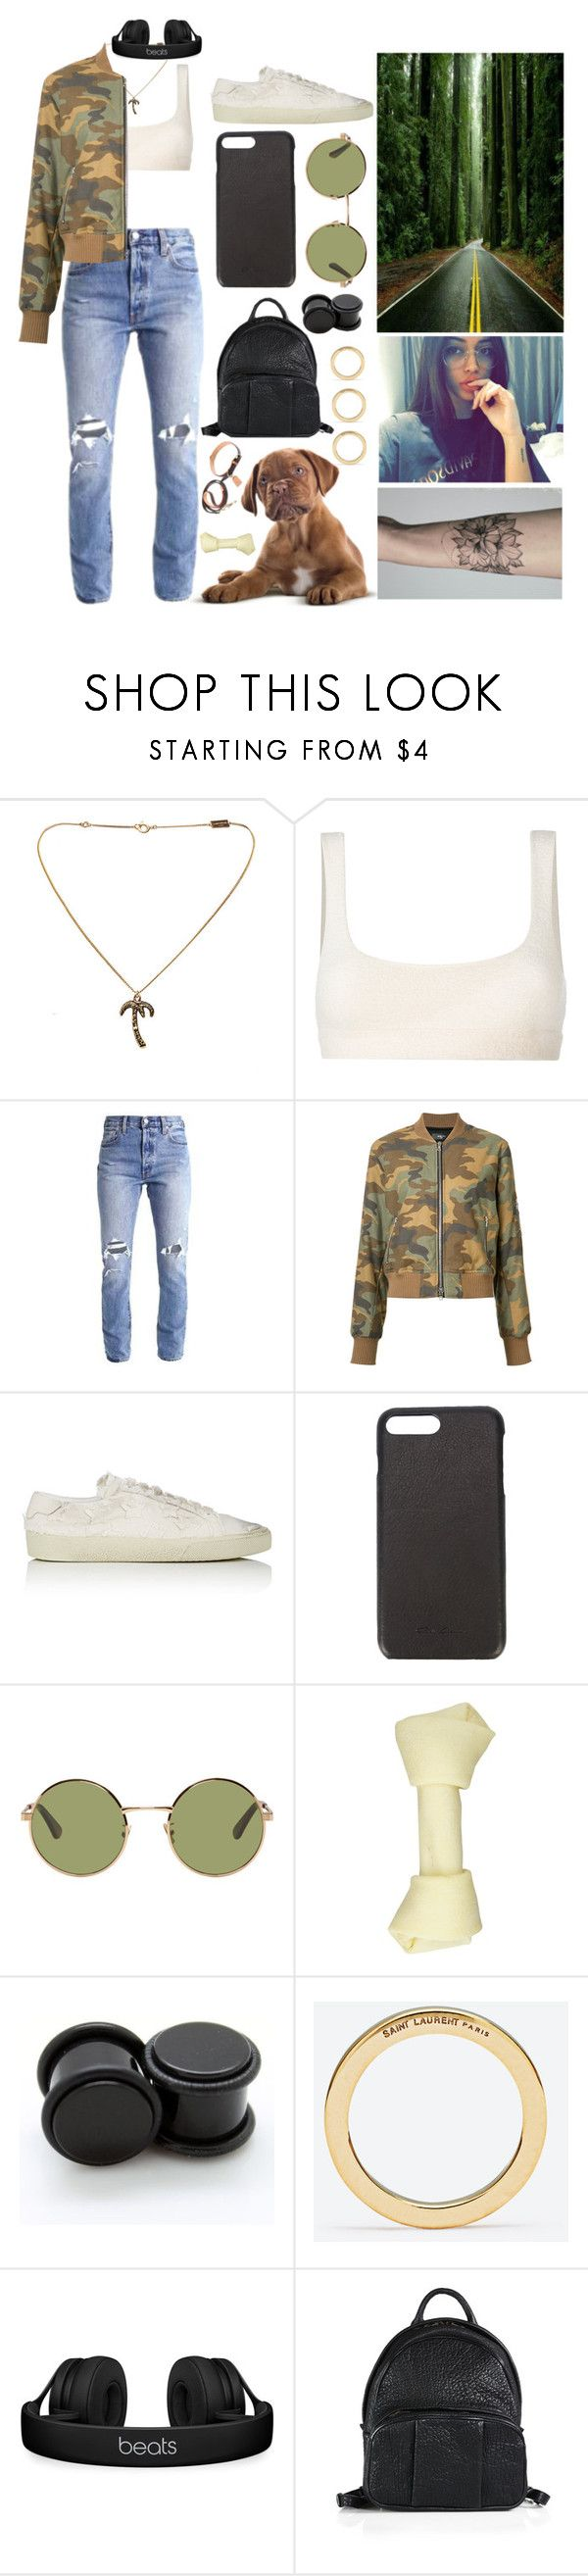 """walking my dog"" by sabri-belieber ❤ liked on Polyvore featuring Yves Saint Laurent, Yeezy by Kanye West, Levi's, AMIRI, Rick Owens, Louis Vuitton, Beats by Dr. Dre and Alexander Wang"